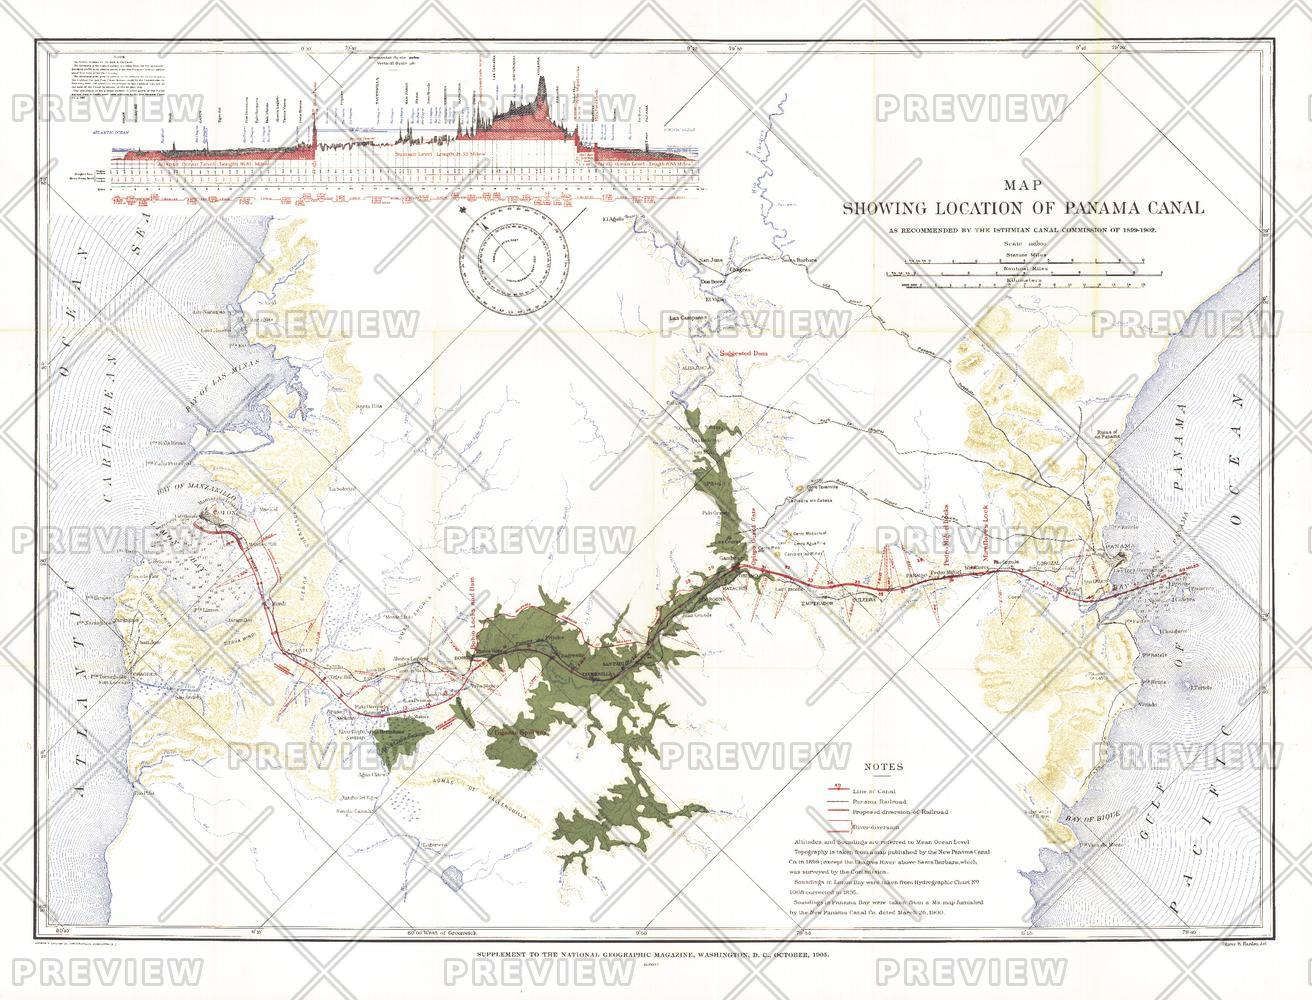 Map Showing Location of Panama Canal 1899-1902 - Published 1905